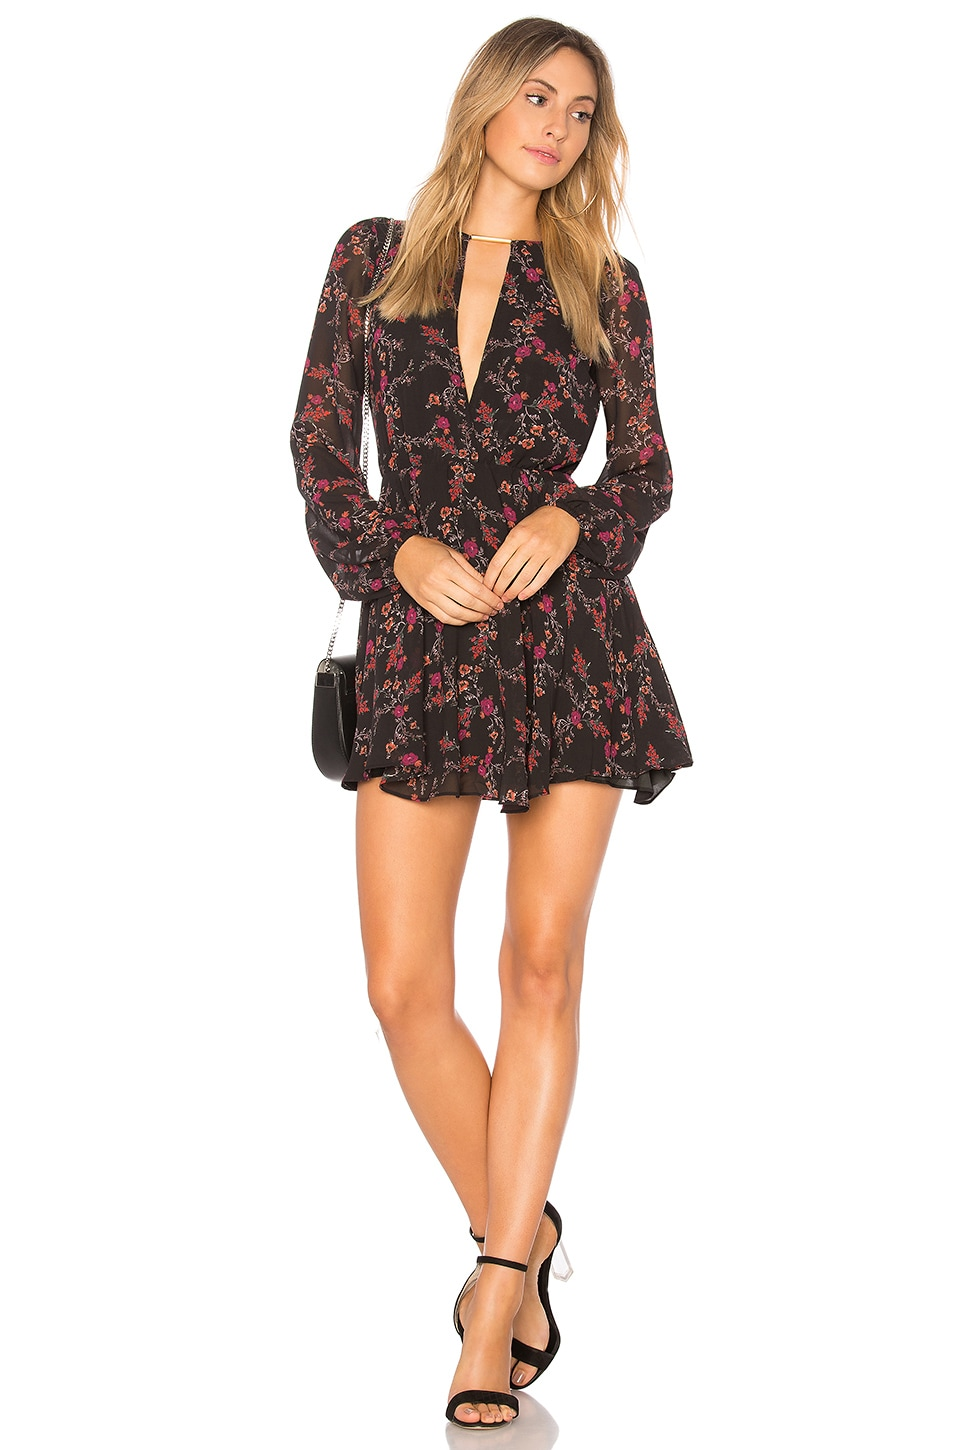 Lovers + Friends Lana Dress in Dark Autumn Floral